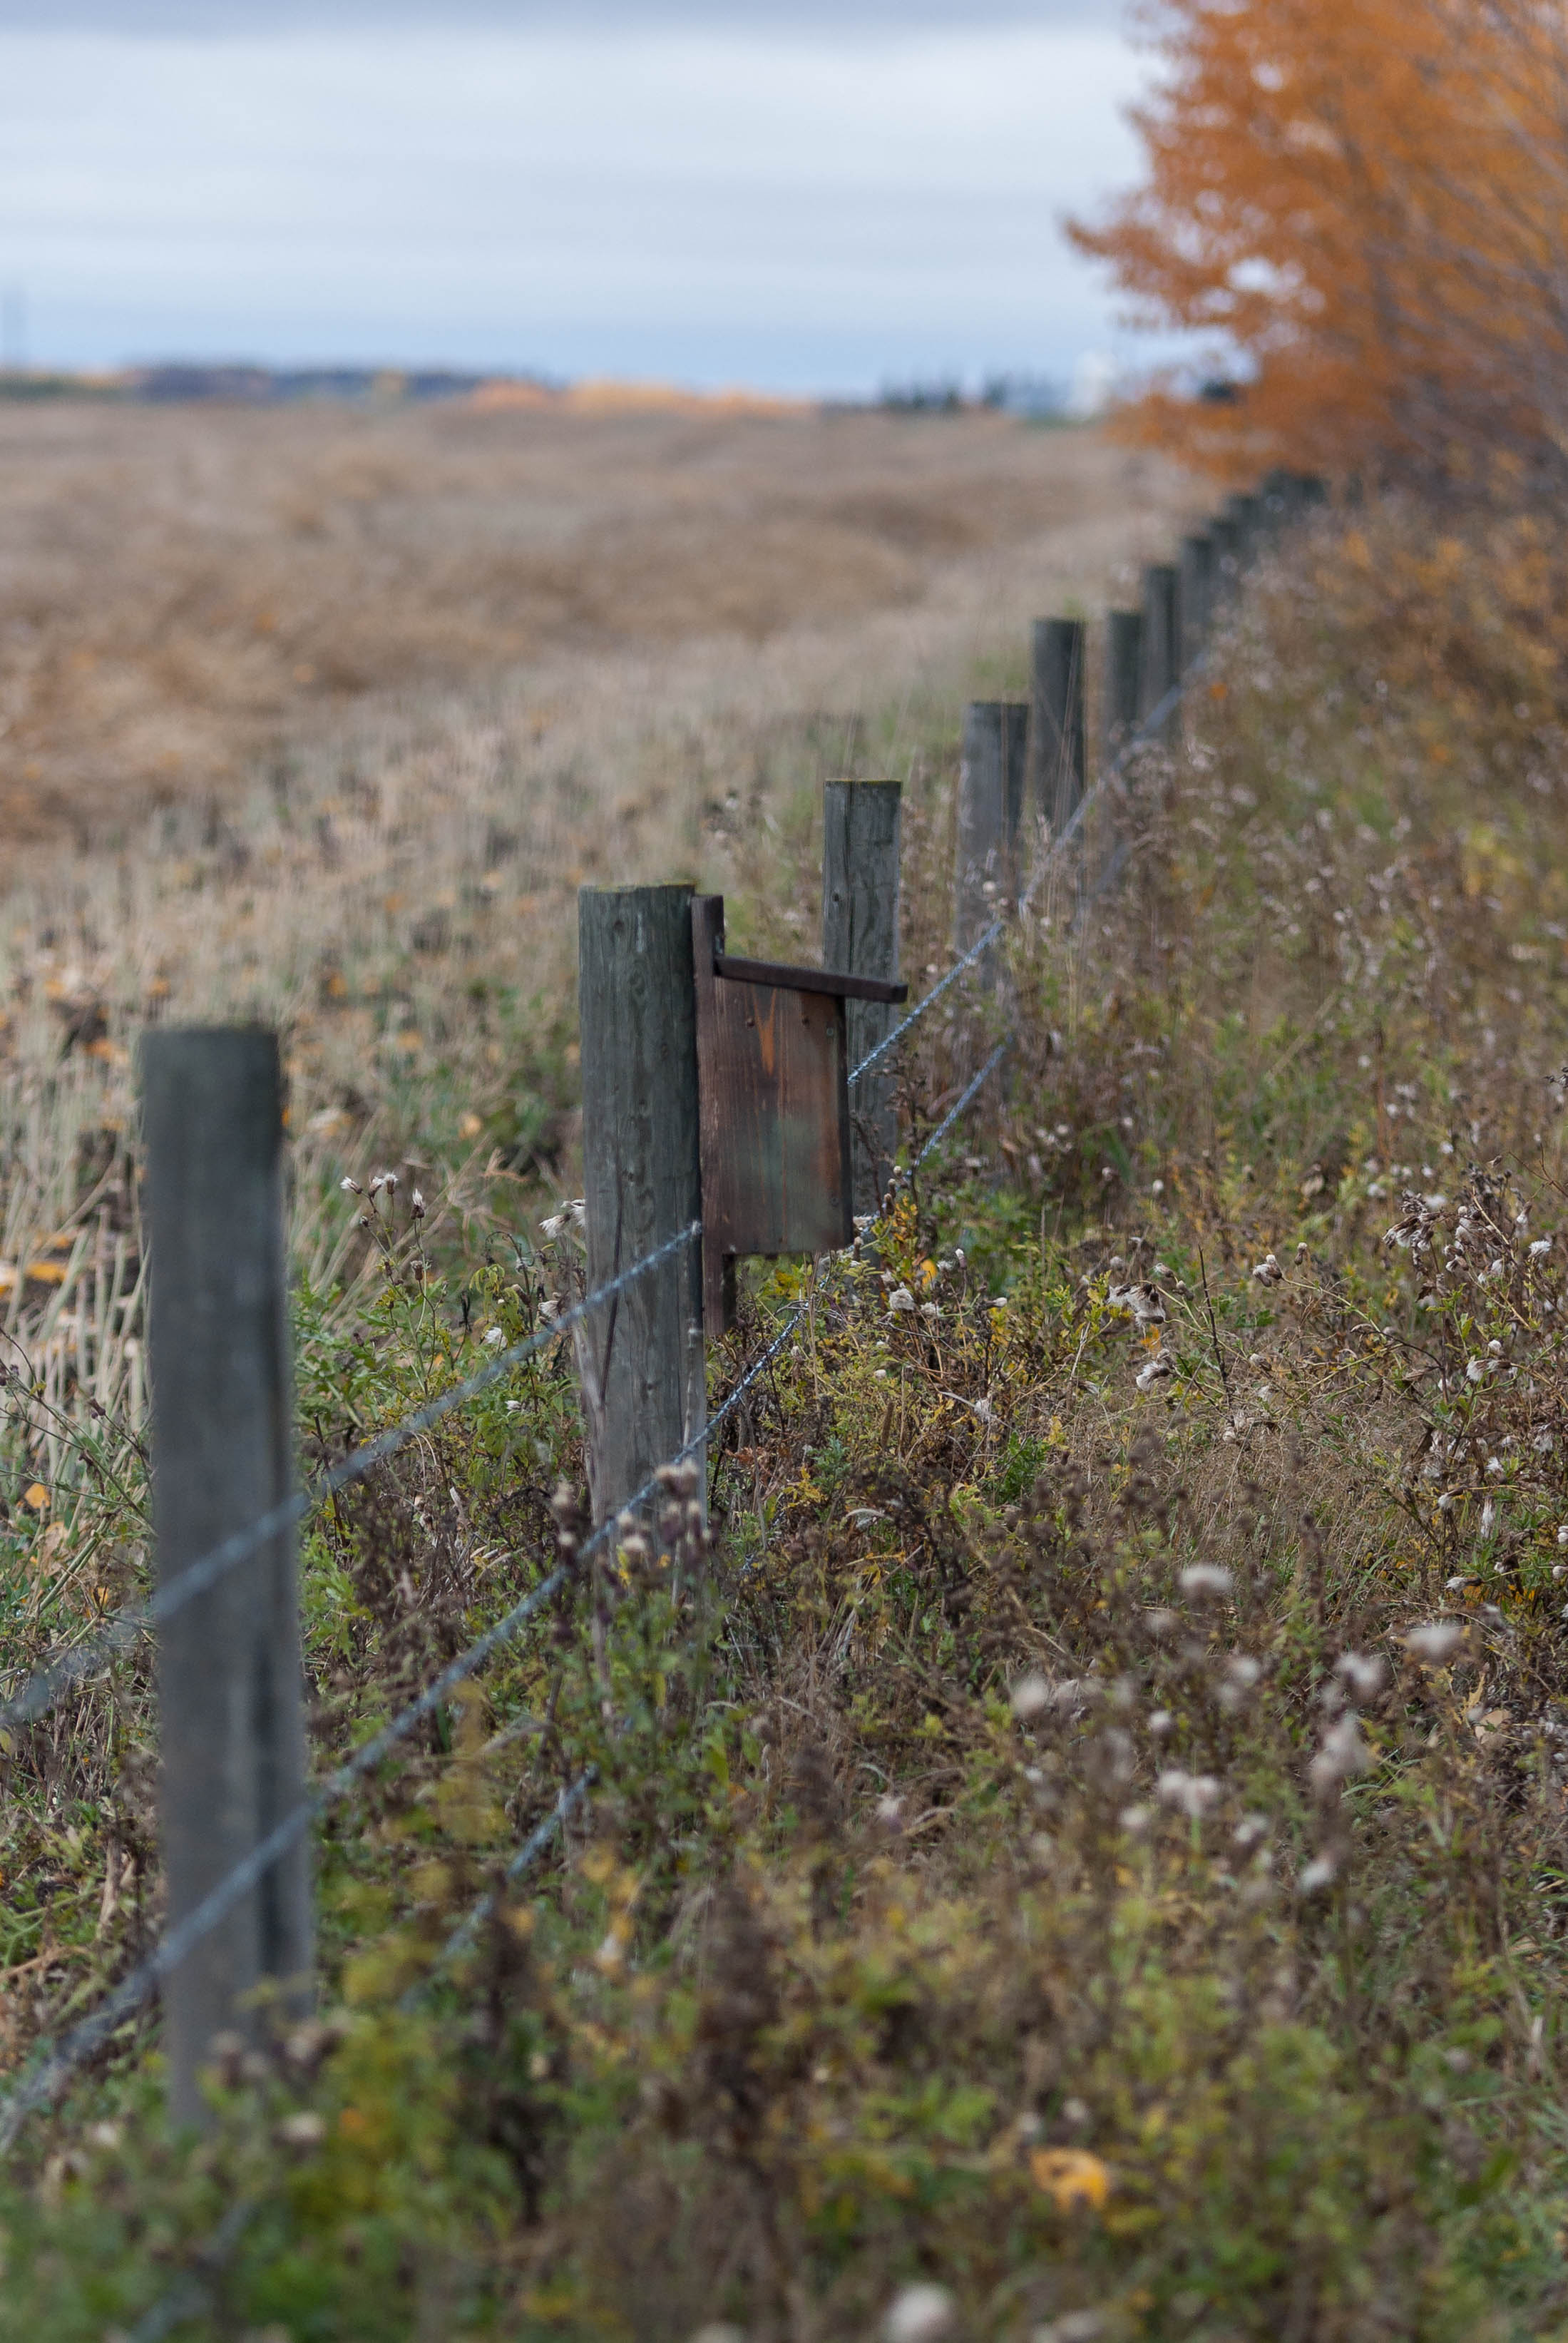 Fence and bird houses by Steve Ricketts